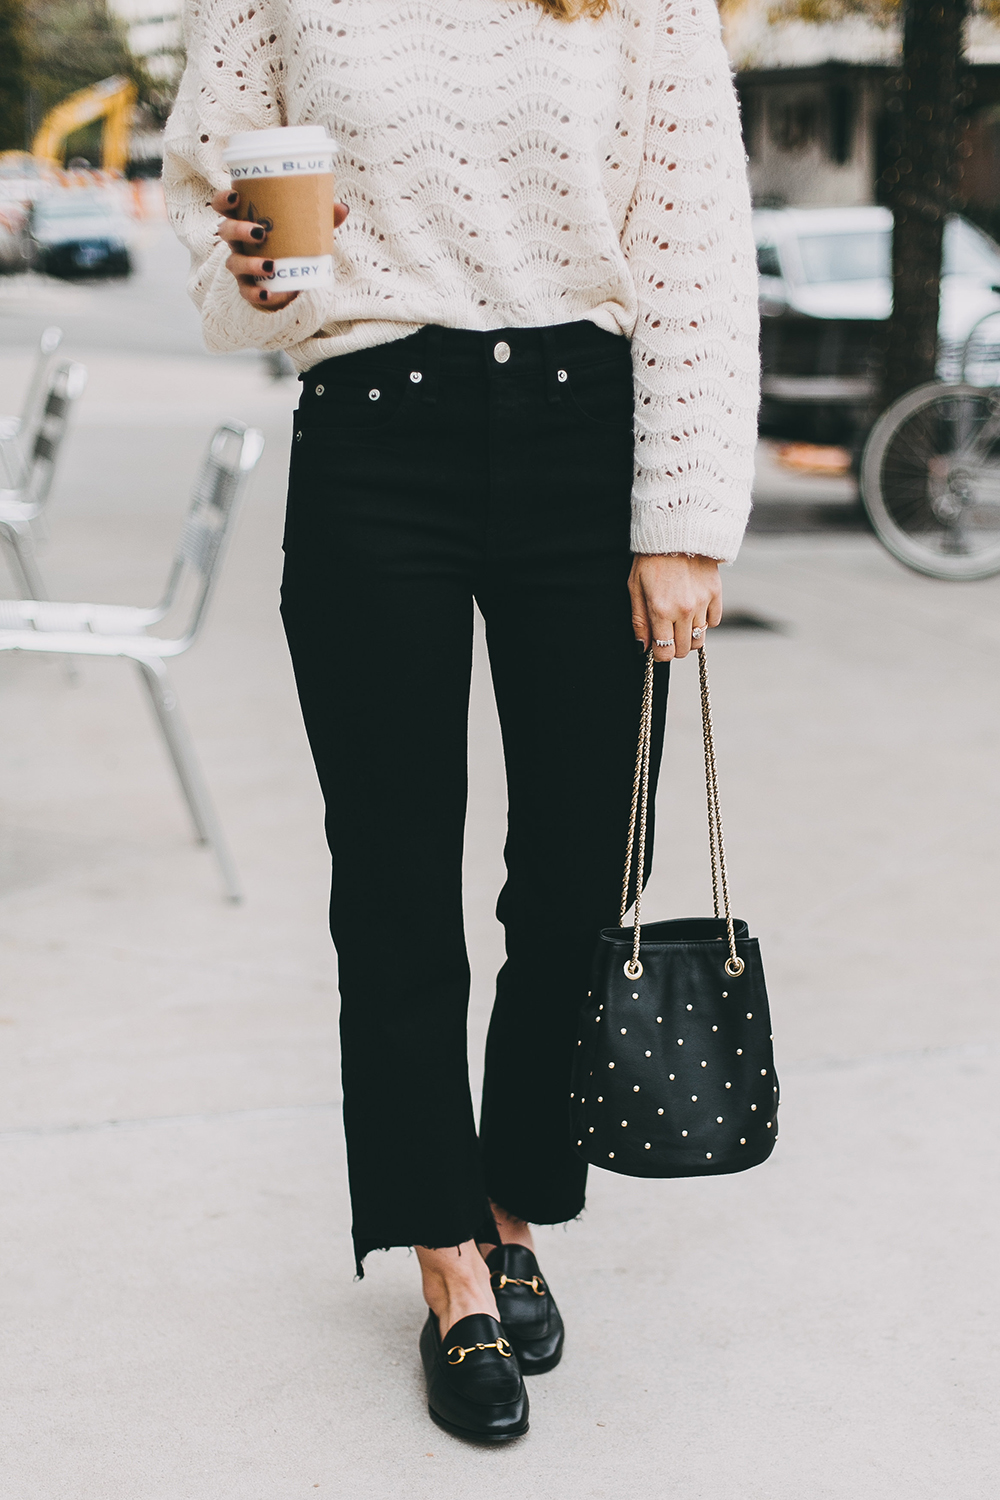 livvyland-blog-olivia-watson-austin-texas-fashion-blogger-white-knit-sweater-rag-bone-crop-flare-black-jeans-gucci-loafers-3